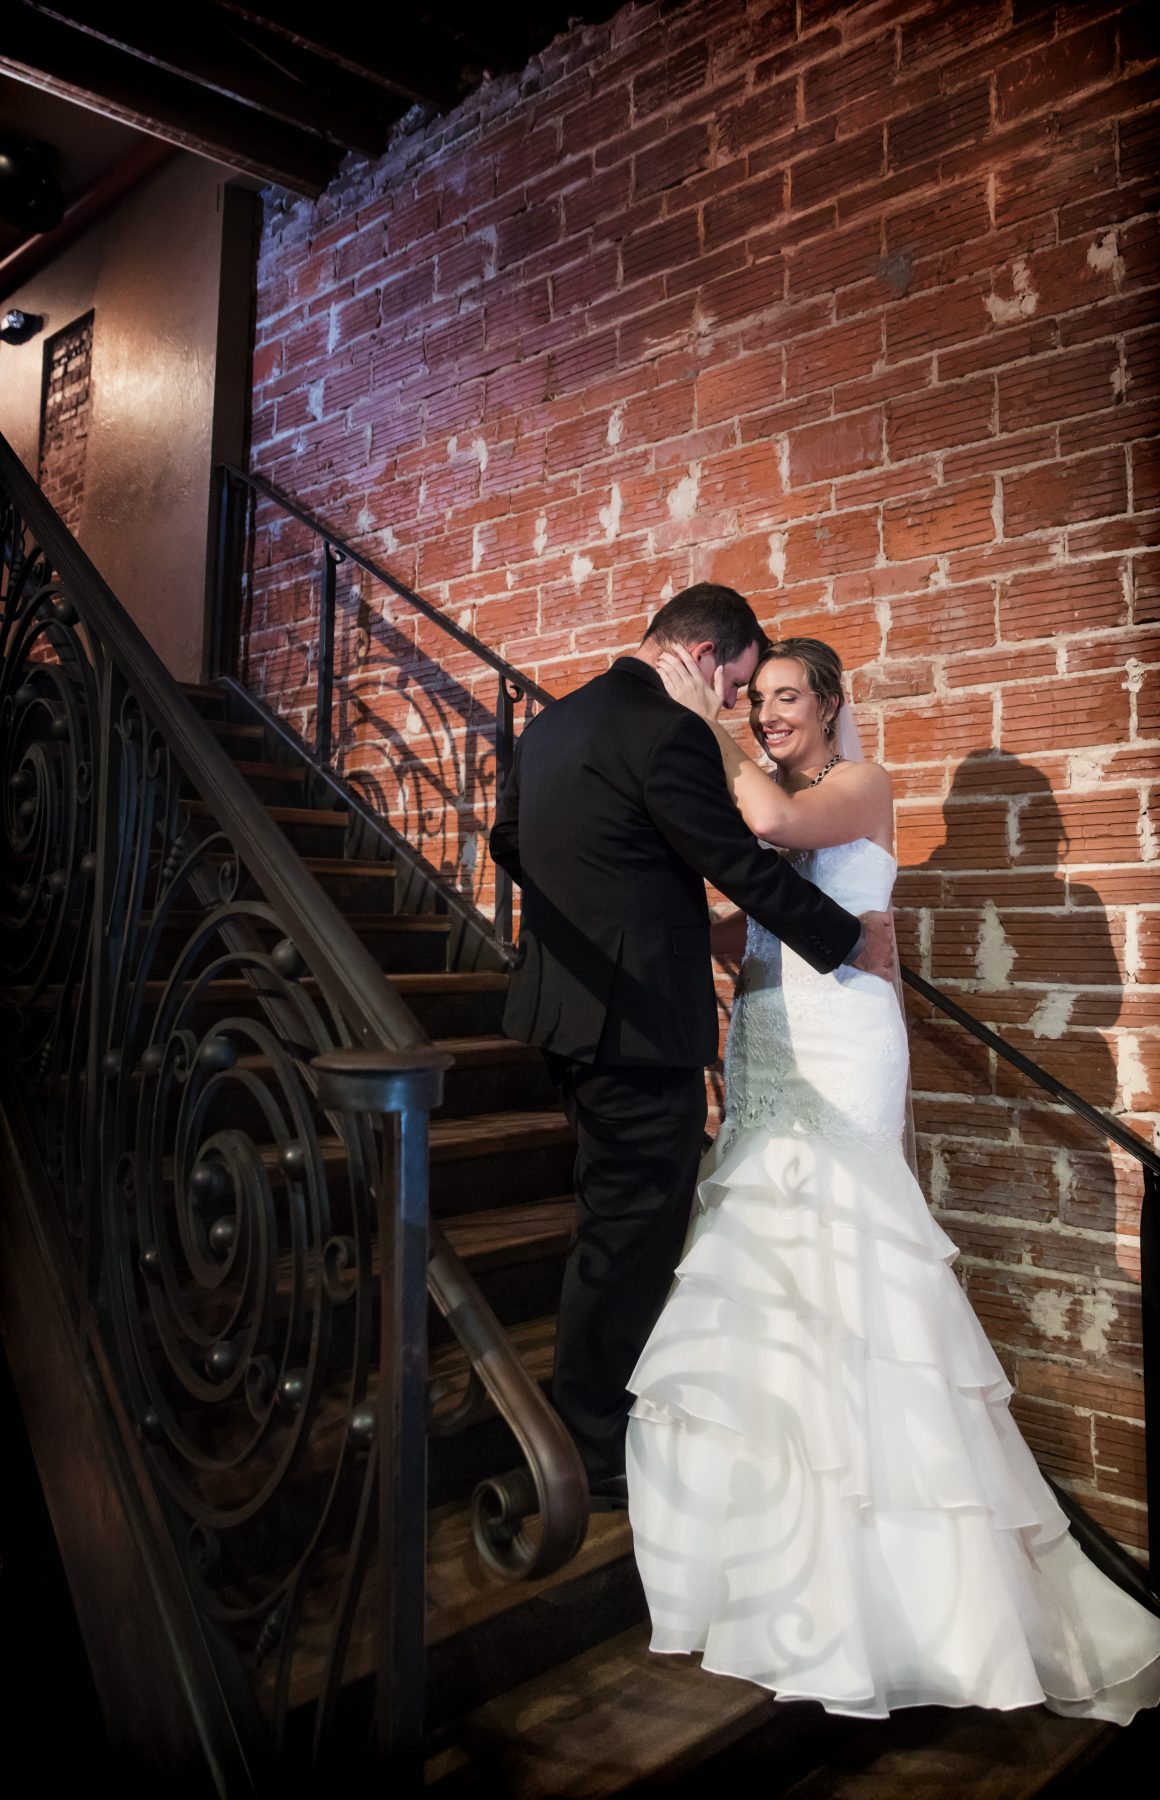 Vintage Florida Bride and Groom First Look on Staircase against Exposed Red Brick Wall | Downtown St. Pete Unique Wedding Venue NOVA 535